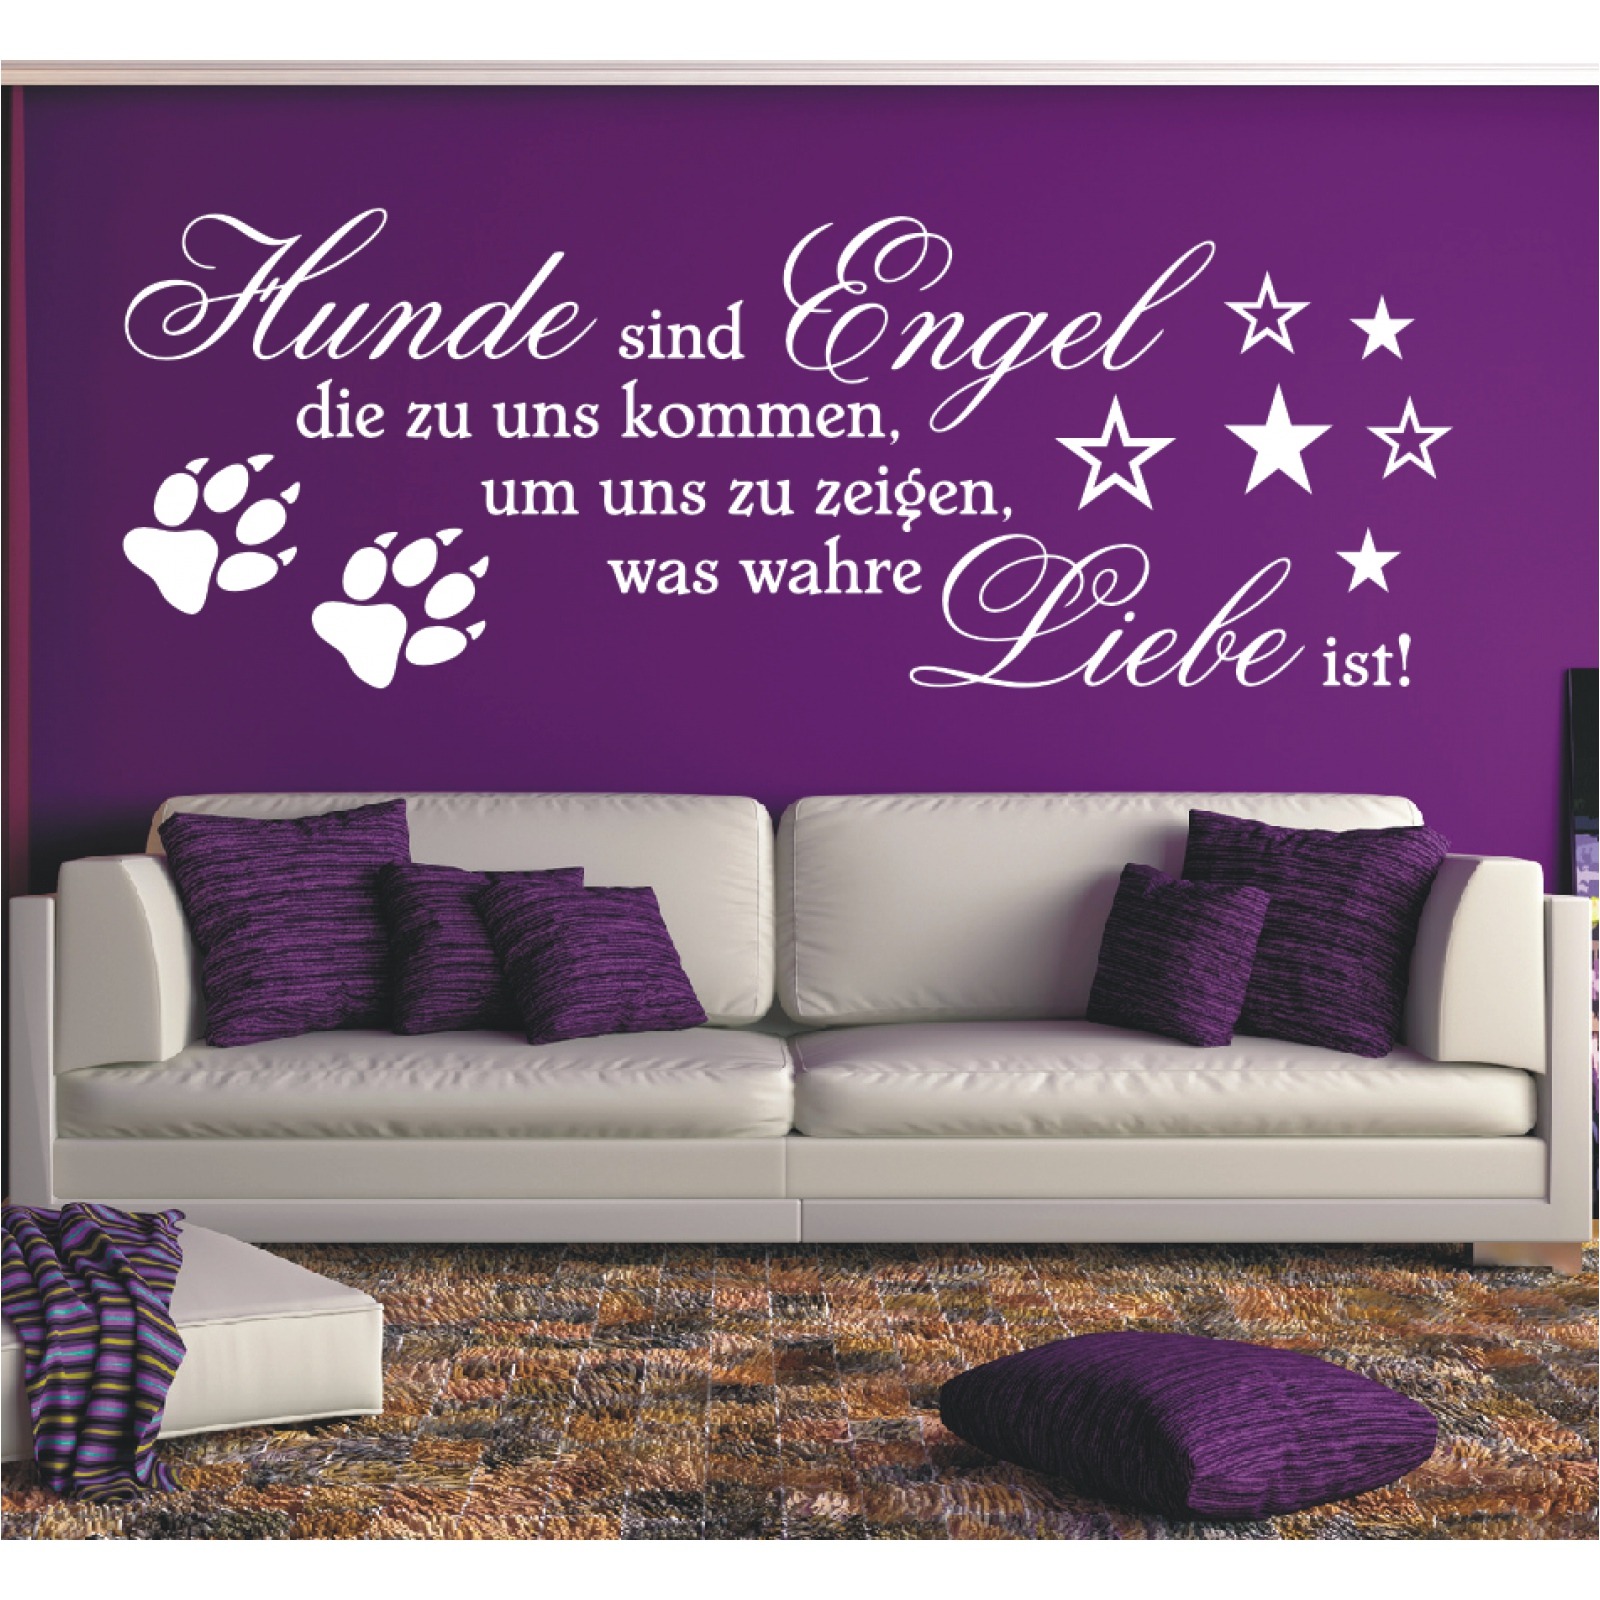 wandtattoo spruch hunde engel wahre liebe sticker. Black Bedroom Furniture Sets. Home Design Ideas